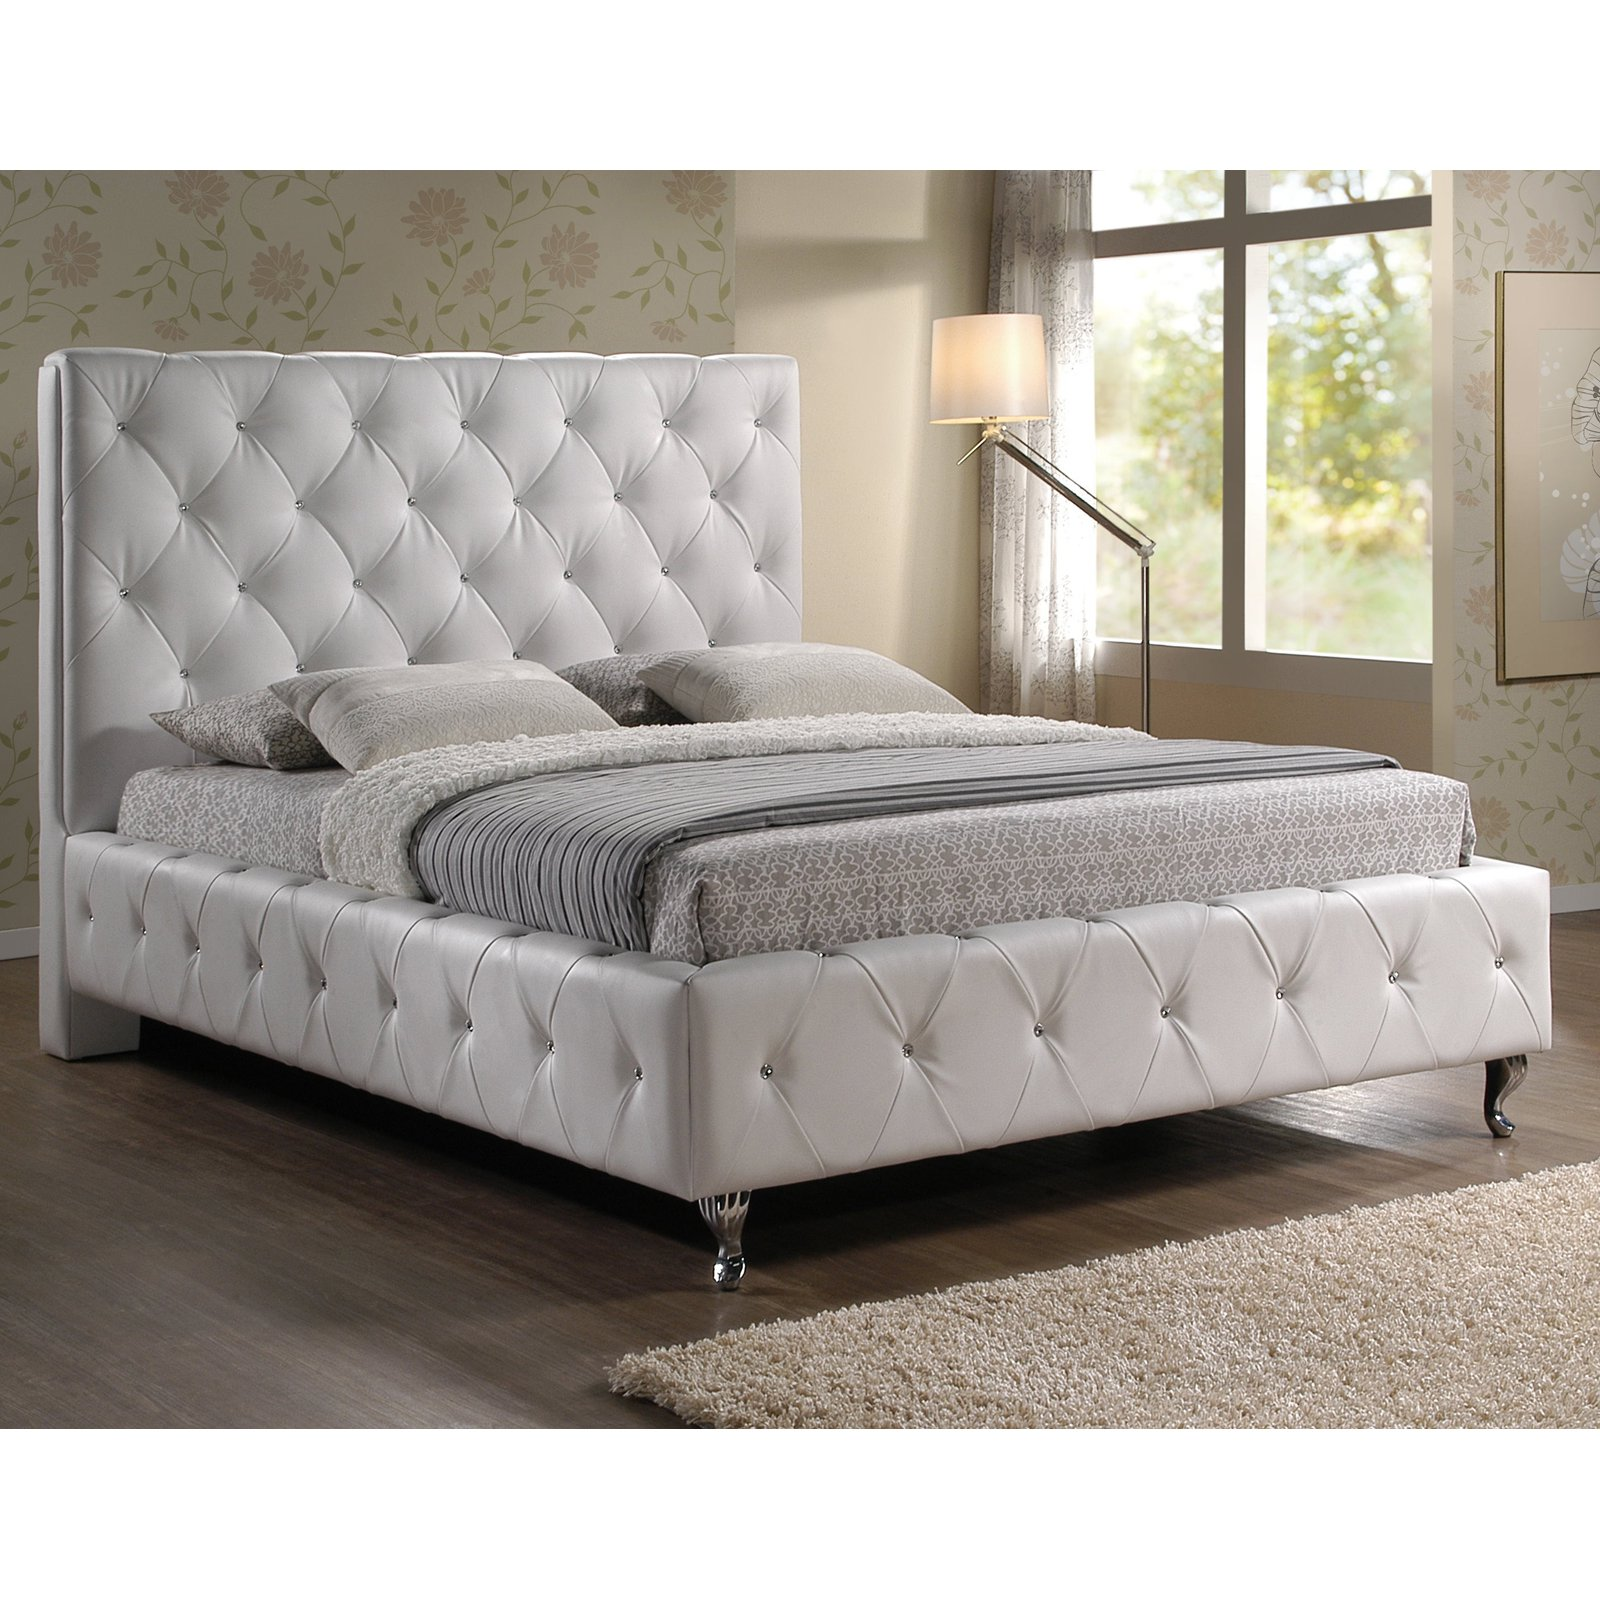 Baxton Studio Stella Upholstered Platform Bed, Multiple Sizes